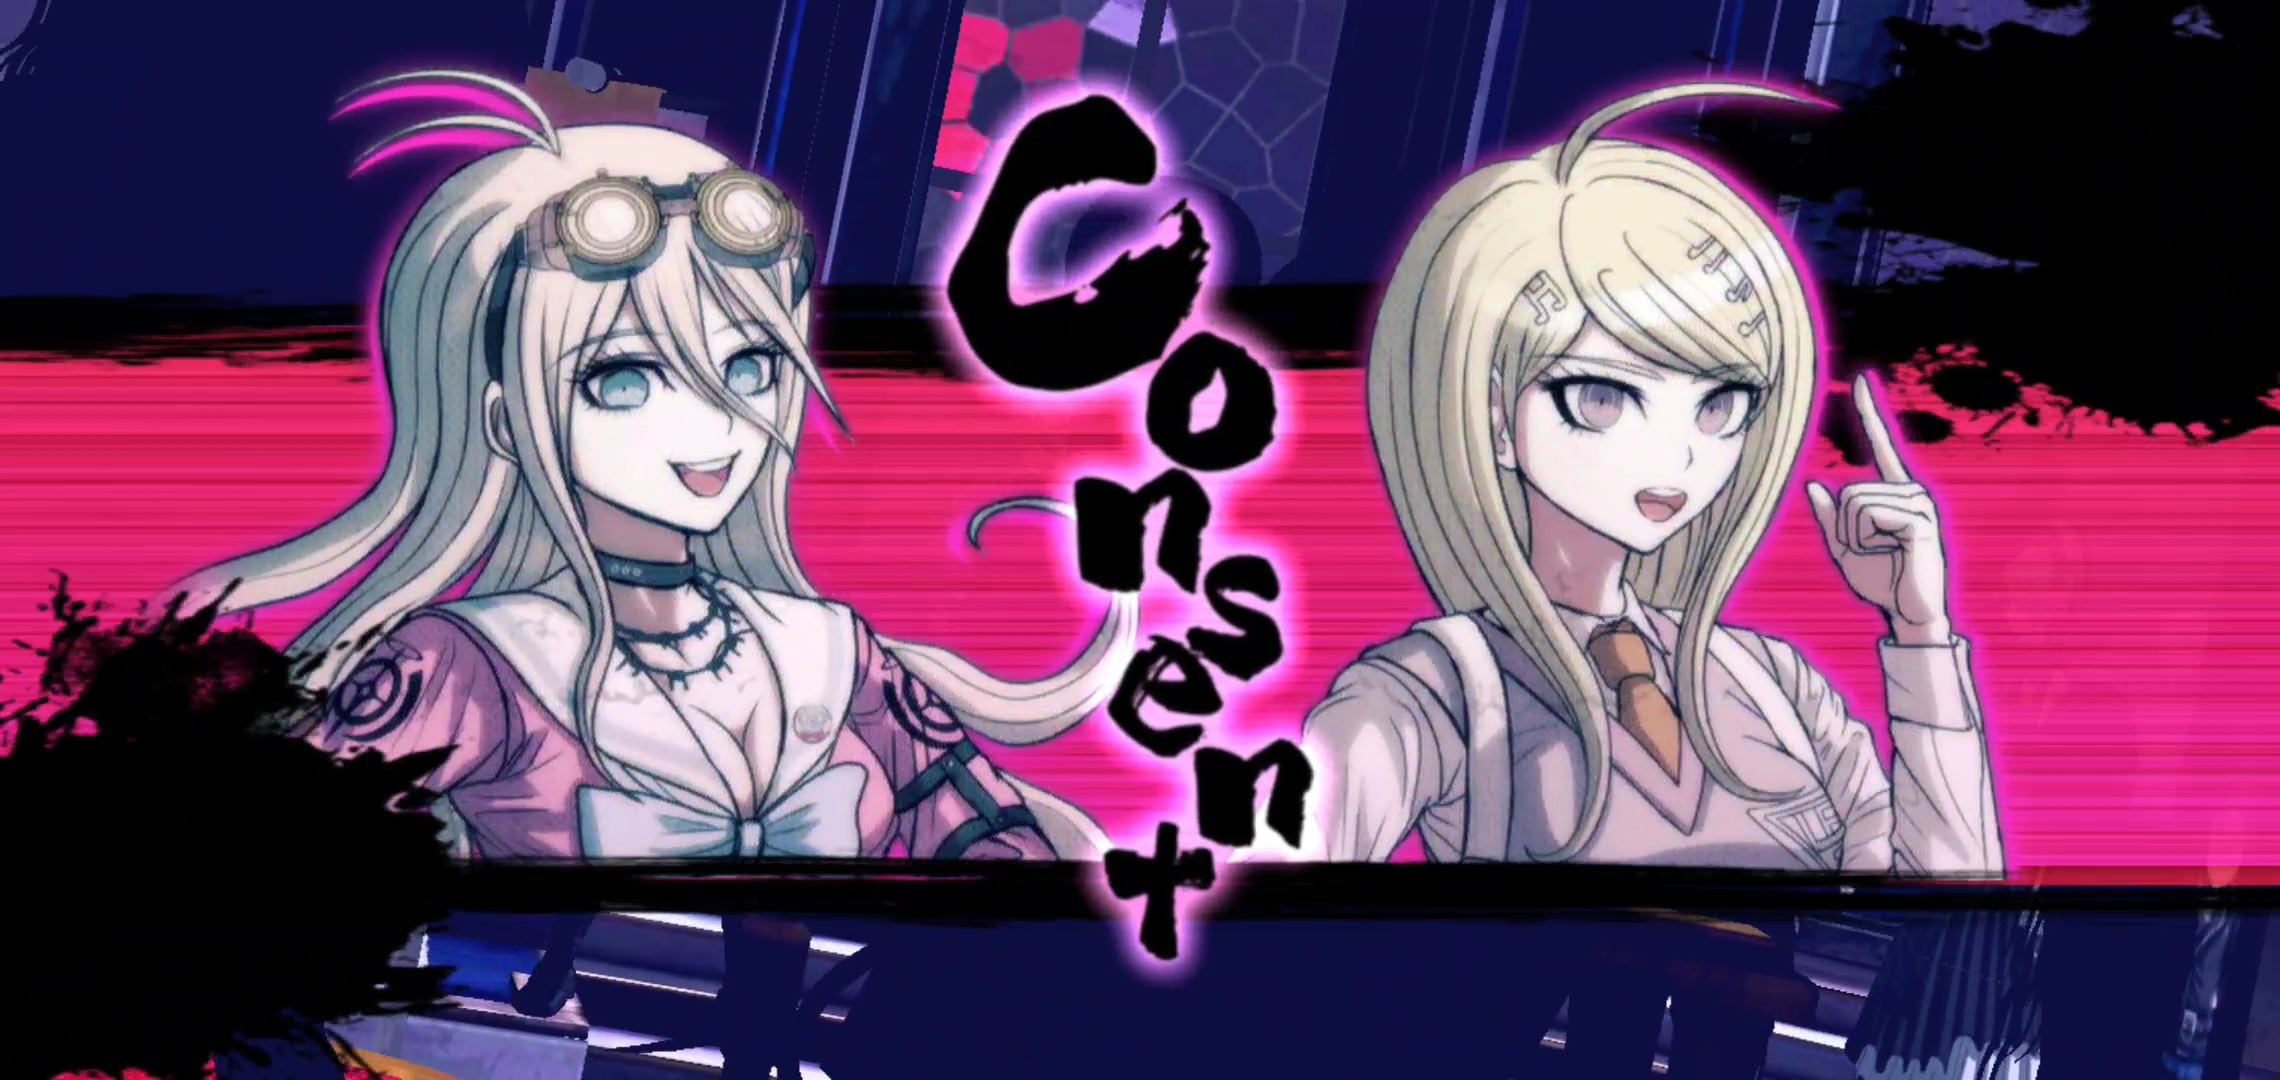 'Danganronpa V3: Killing Harmony' Anniversary Edition Finally Has a Confirmed Release Date for iOS and Android